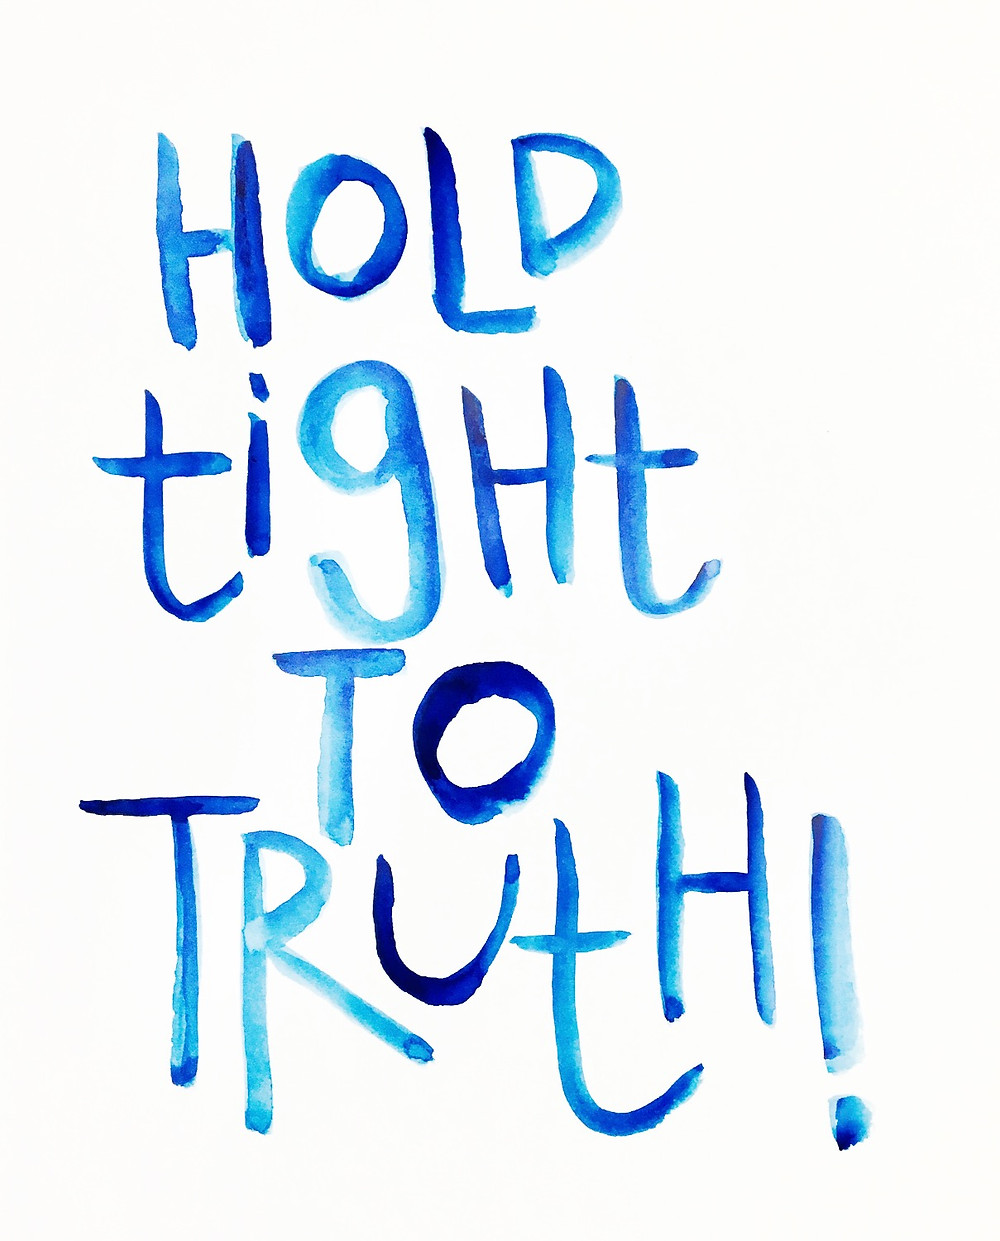 Hold Tight to Truth! Blue watercolour lettering